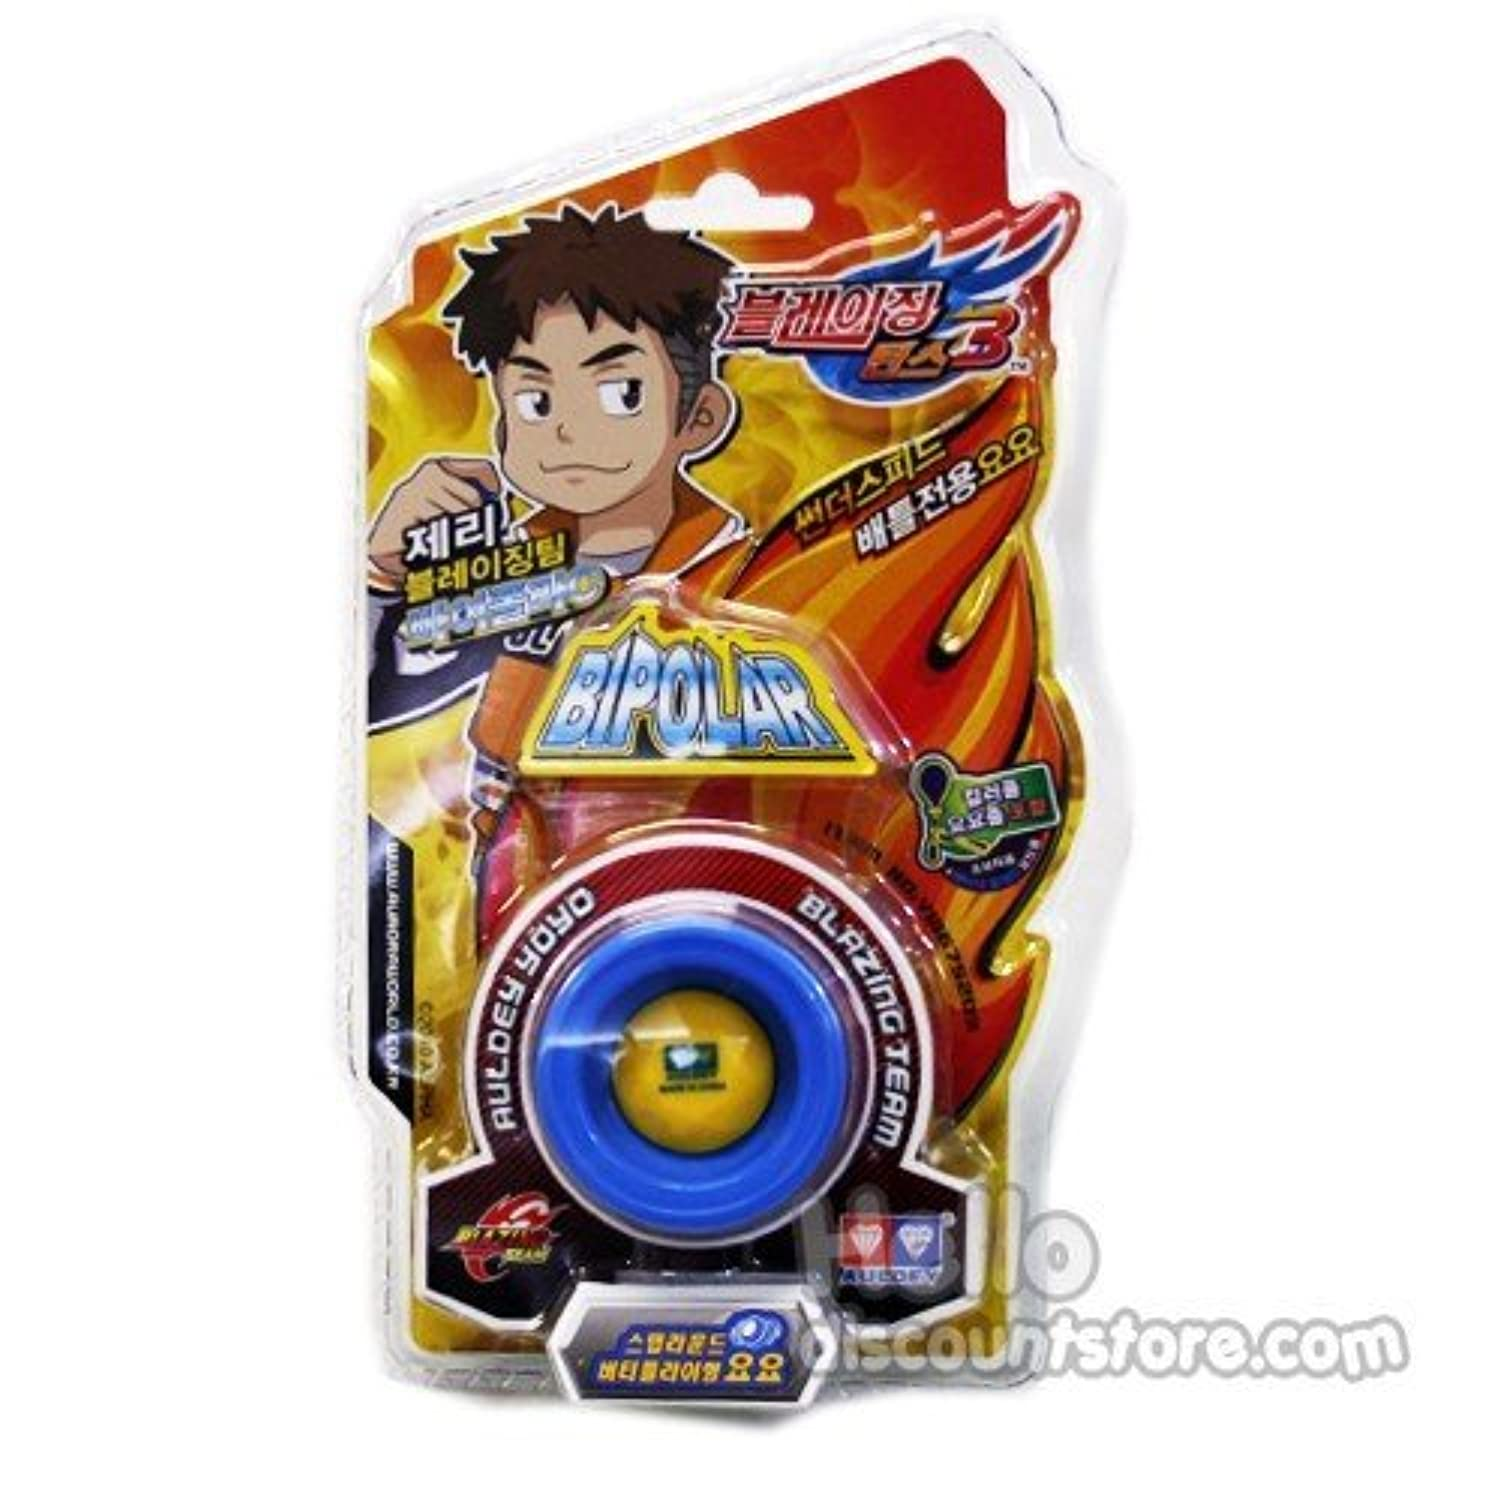 Blazing Teams Type A Yoyo Toy : Bipolar by Blazing Teams [並行輸入品]